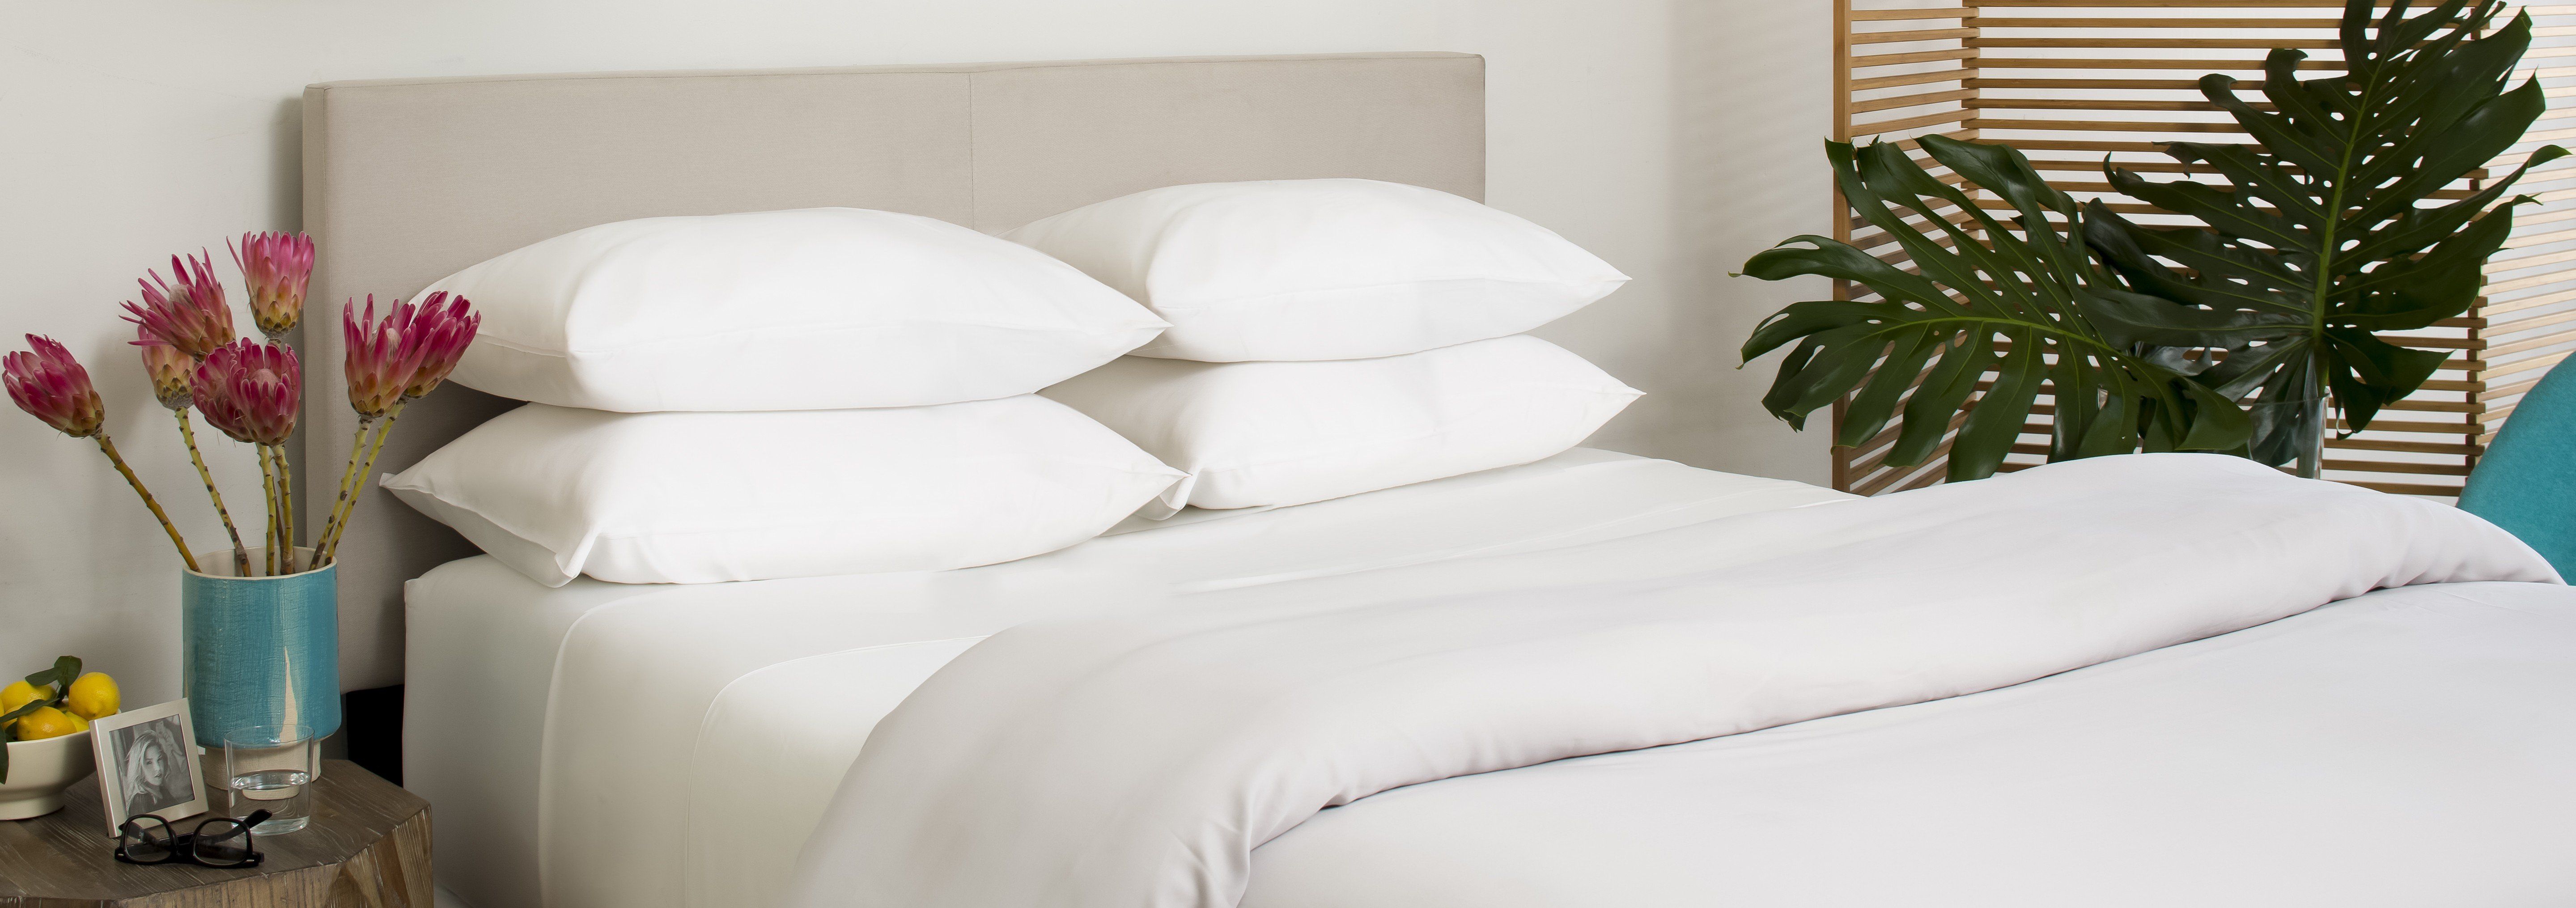 Hot At Night? How to Make Your Bed Cooler